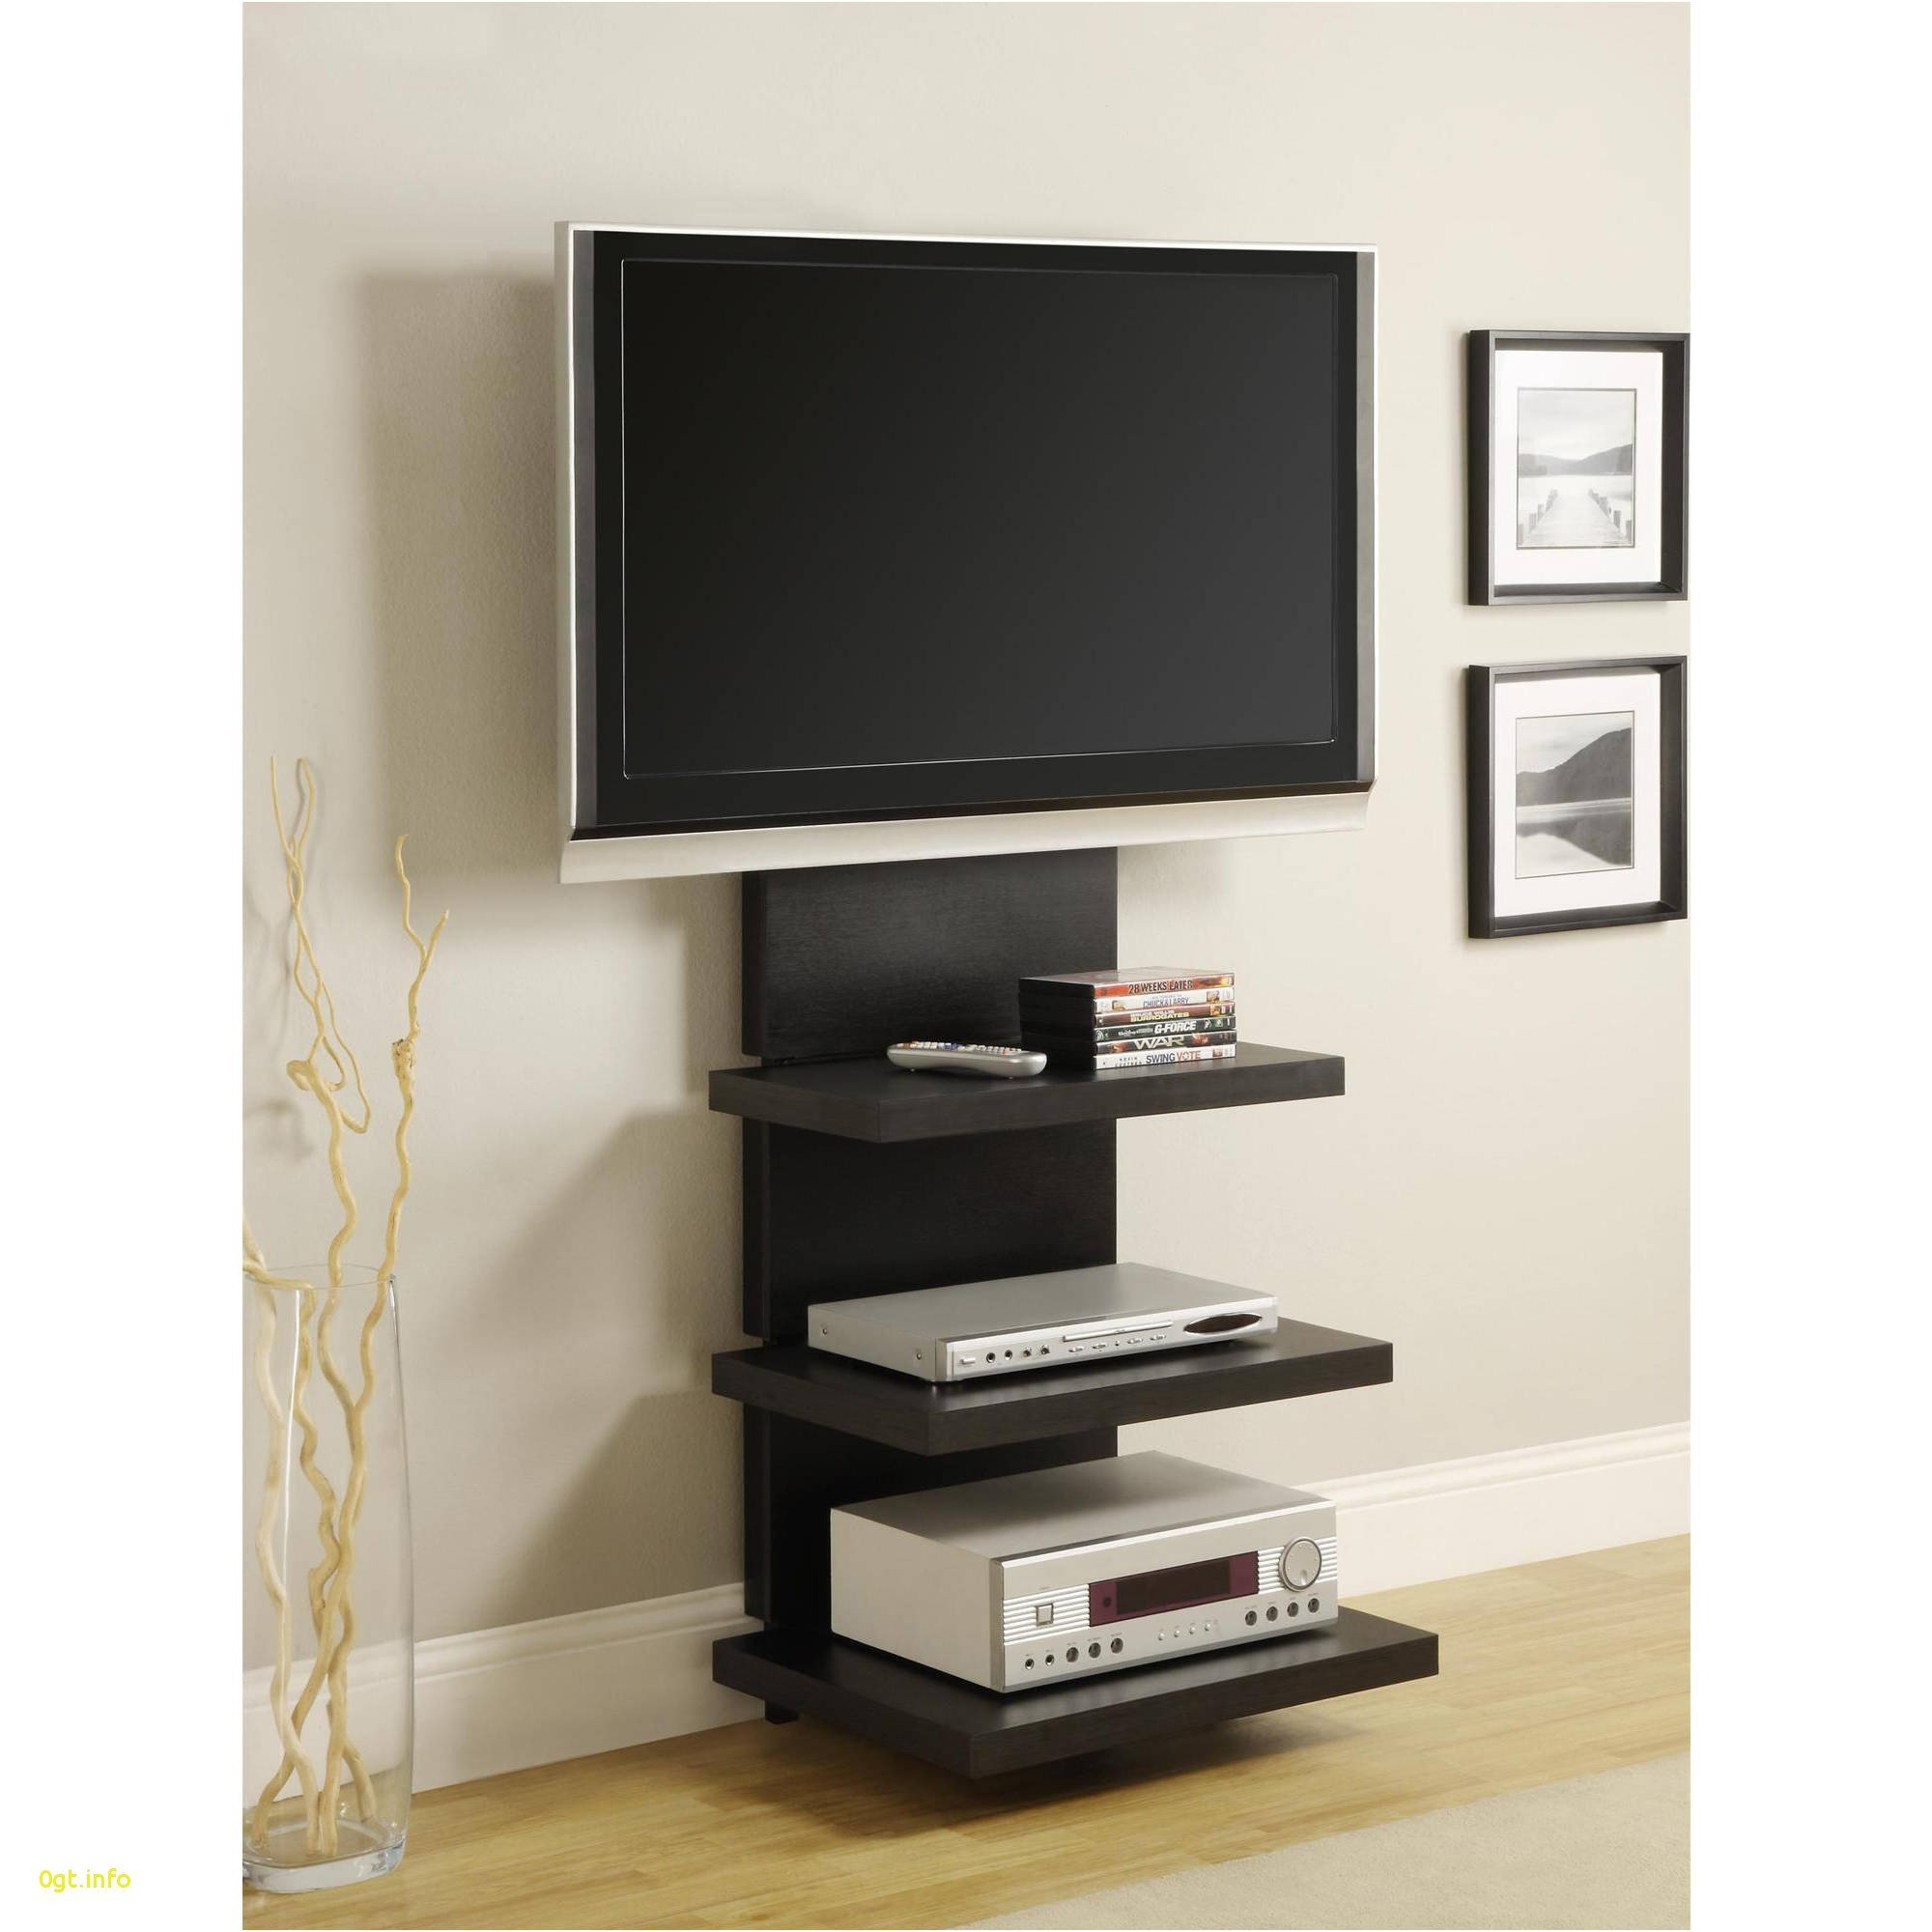 Tall Tv Stands for Bedroom Best Of Ideas Small Tv Stand for Bedroom A Bud Stands Creative